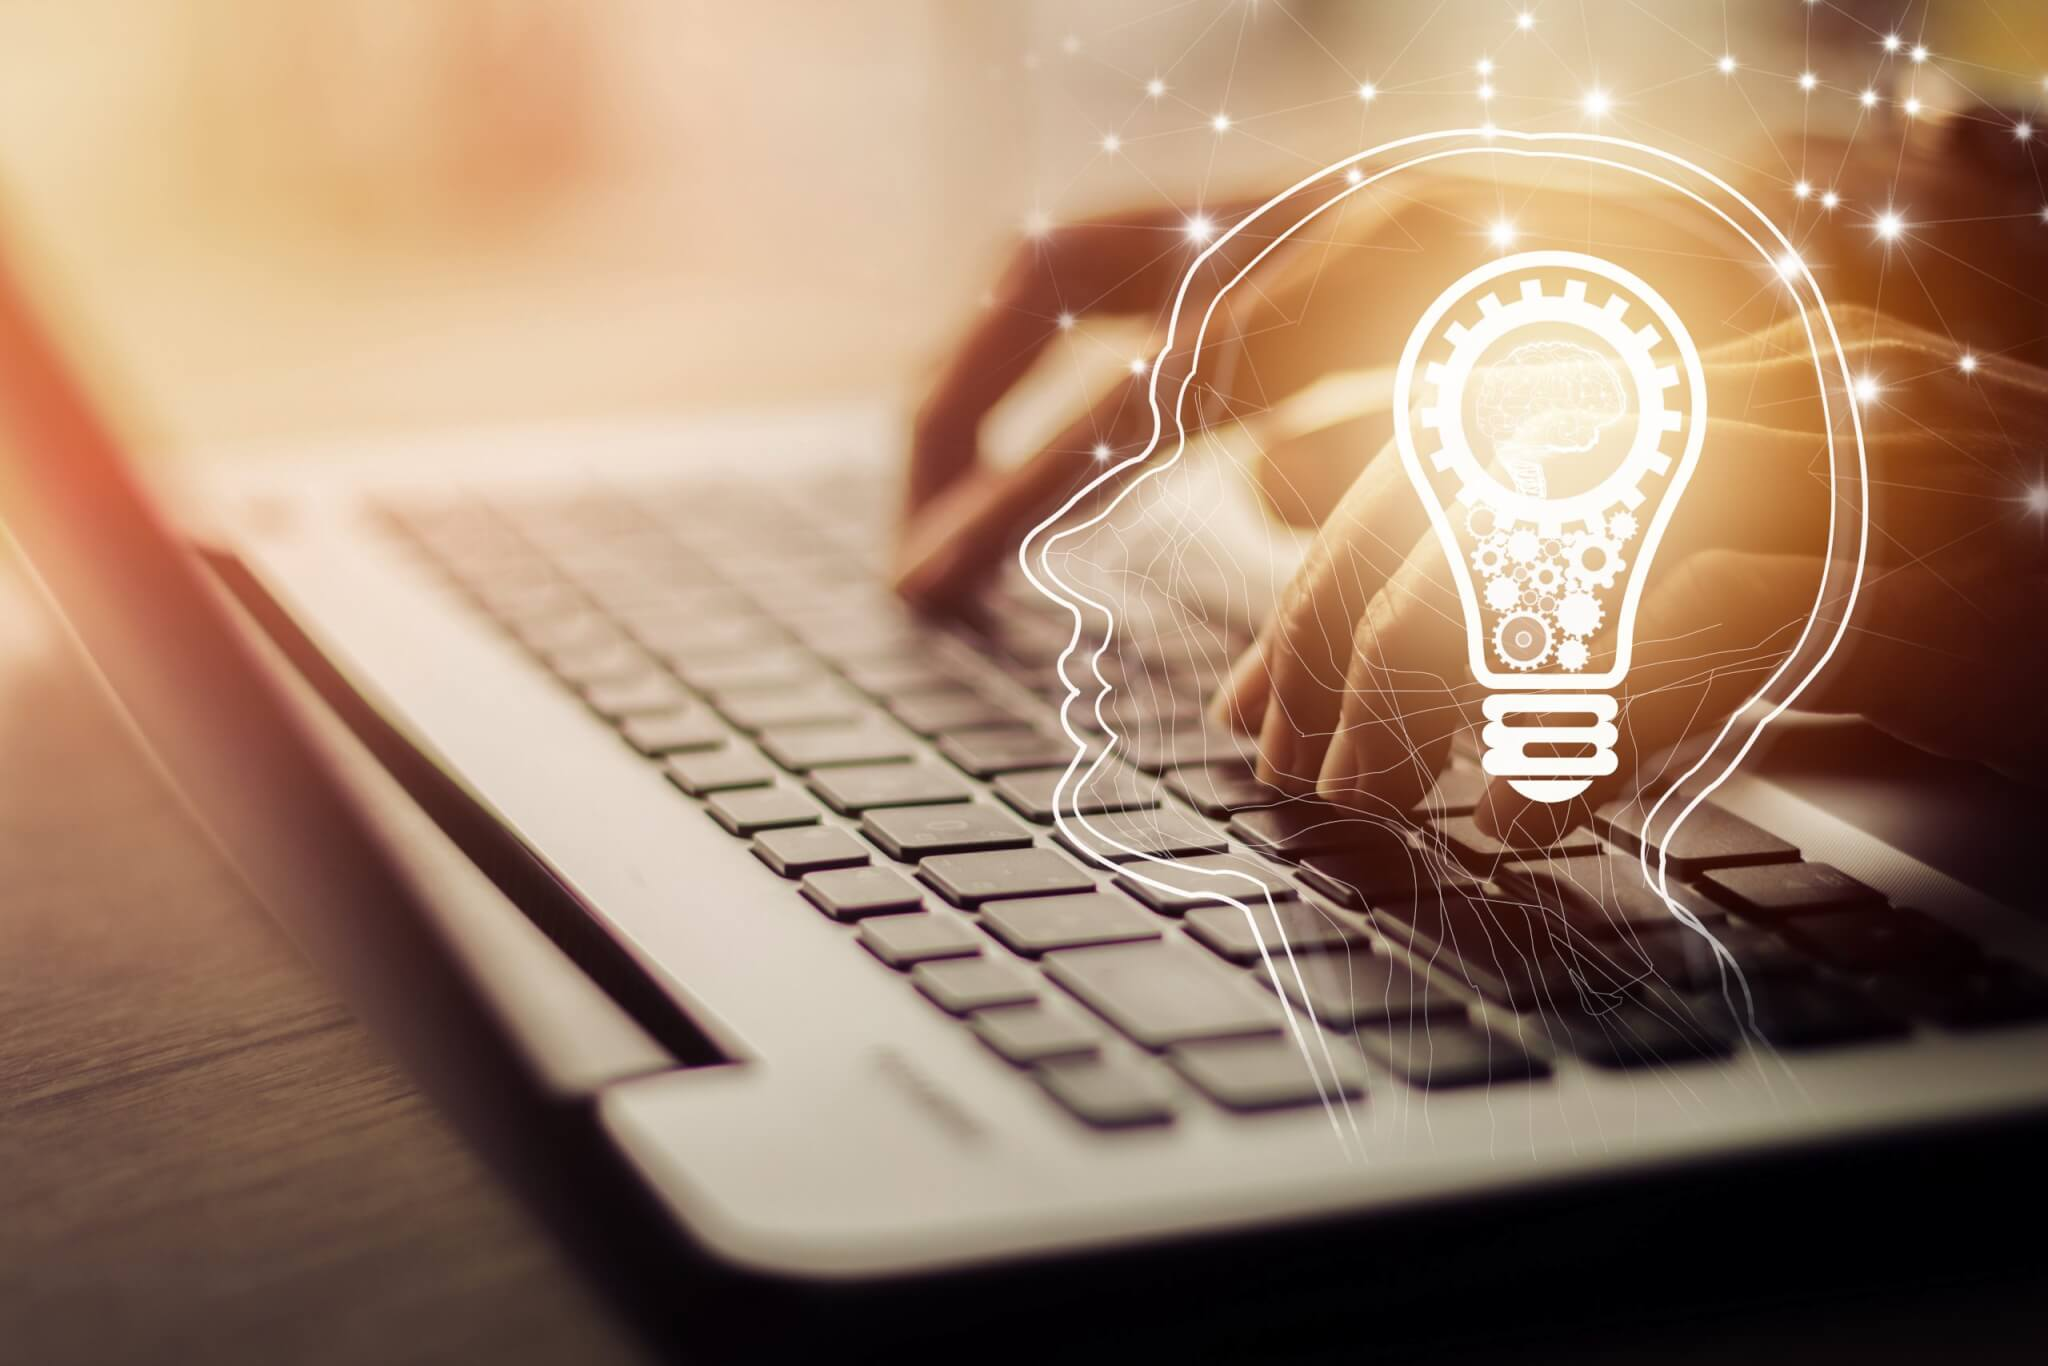 Is VOC Killing Innovation? Not Unless You're Missing the Point Article